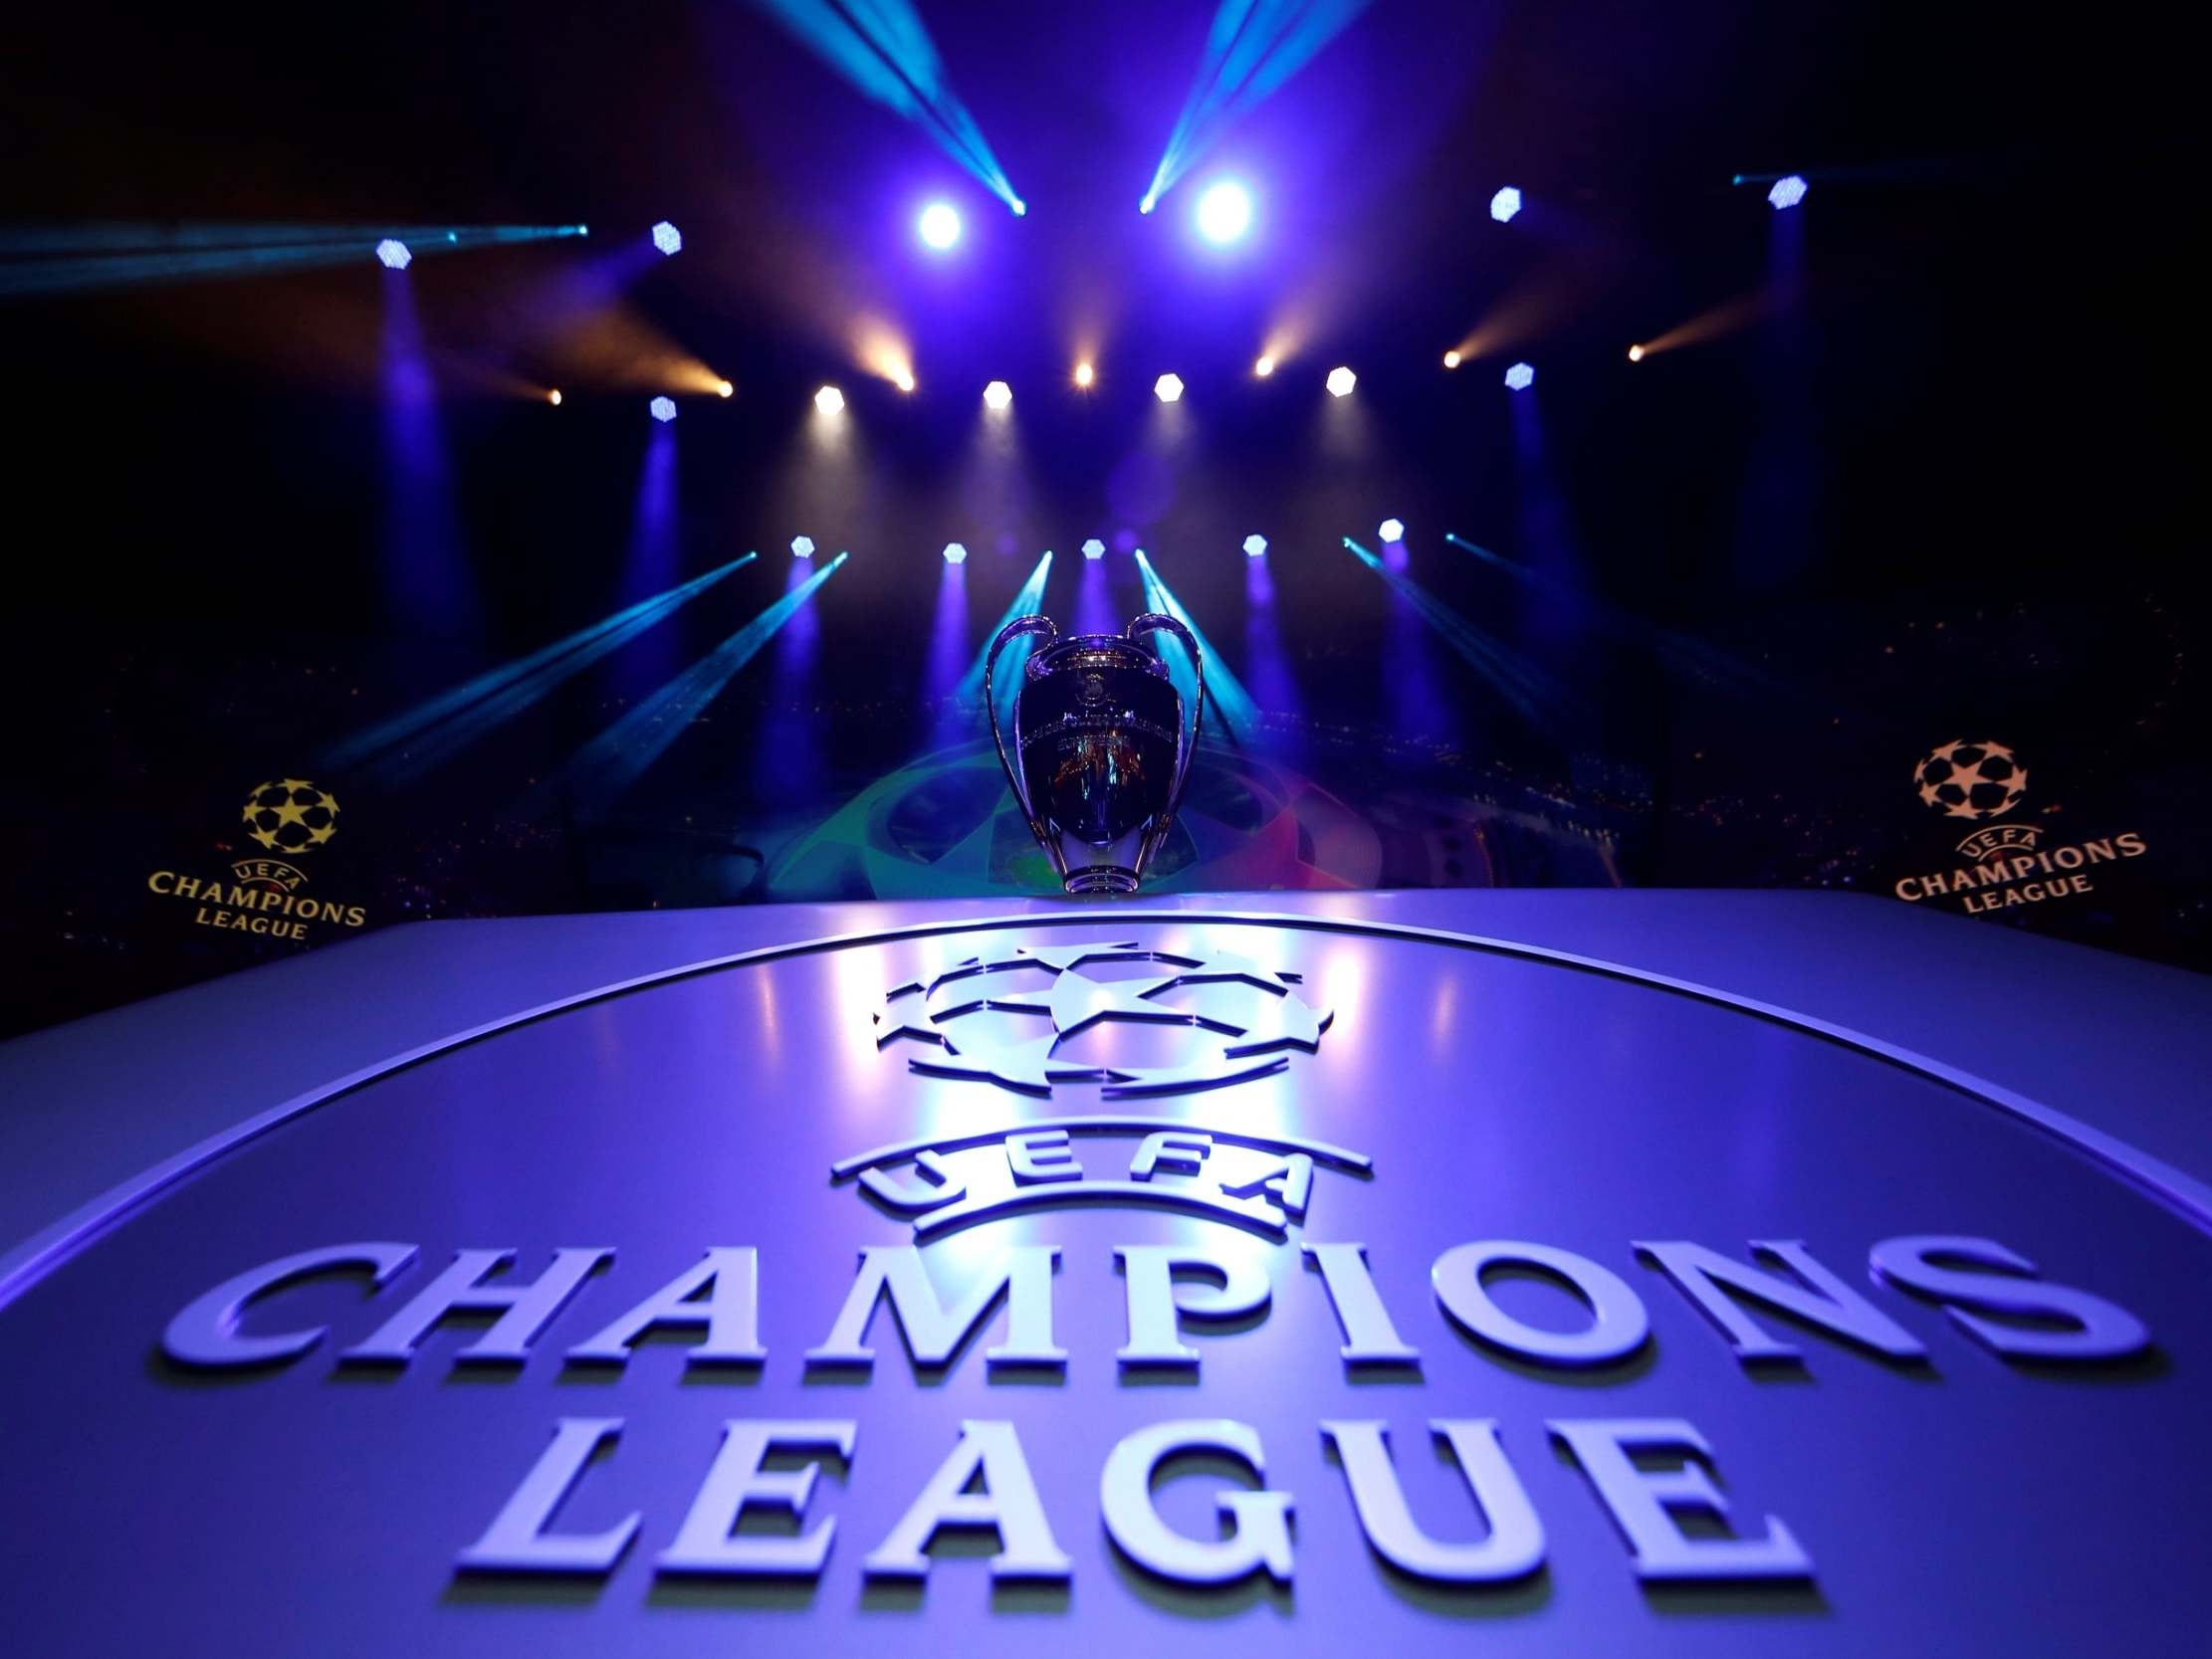 When are Champions League fixtures announced? Liverpool, Spurs, Chelsea and Man City await 2019 group stage schedule